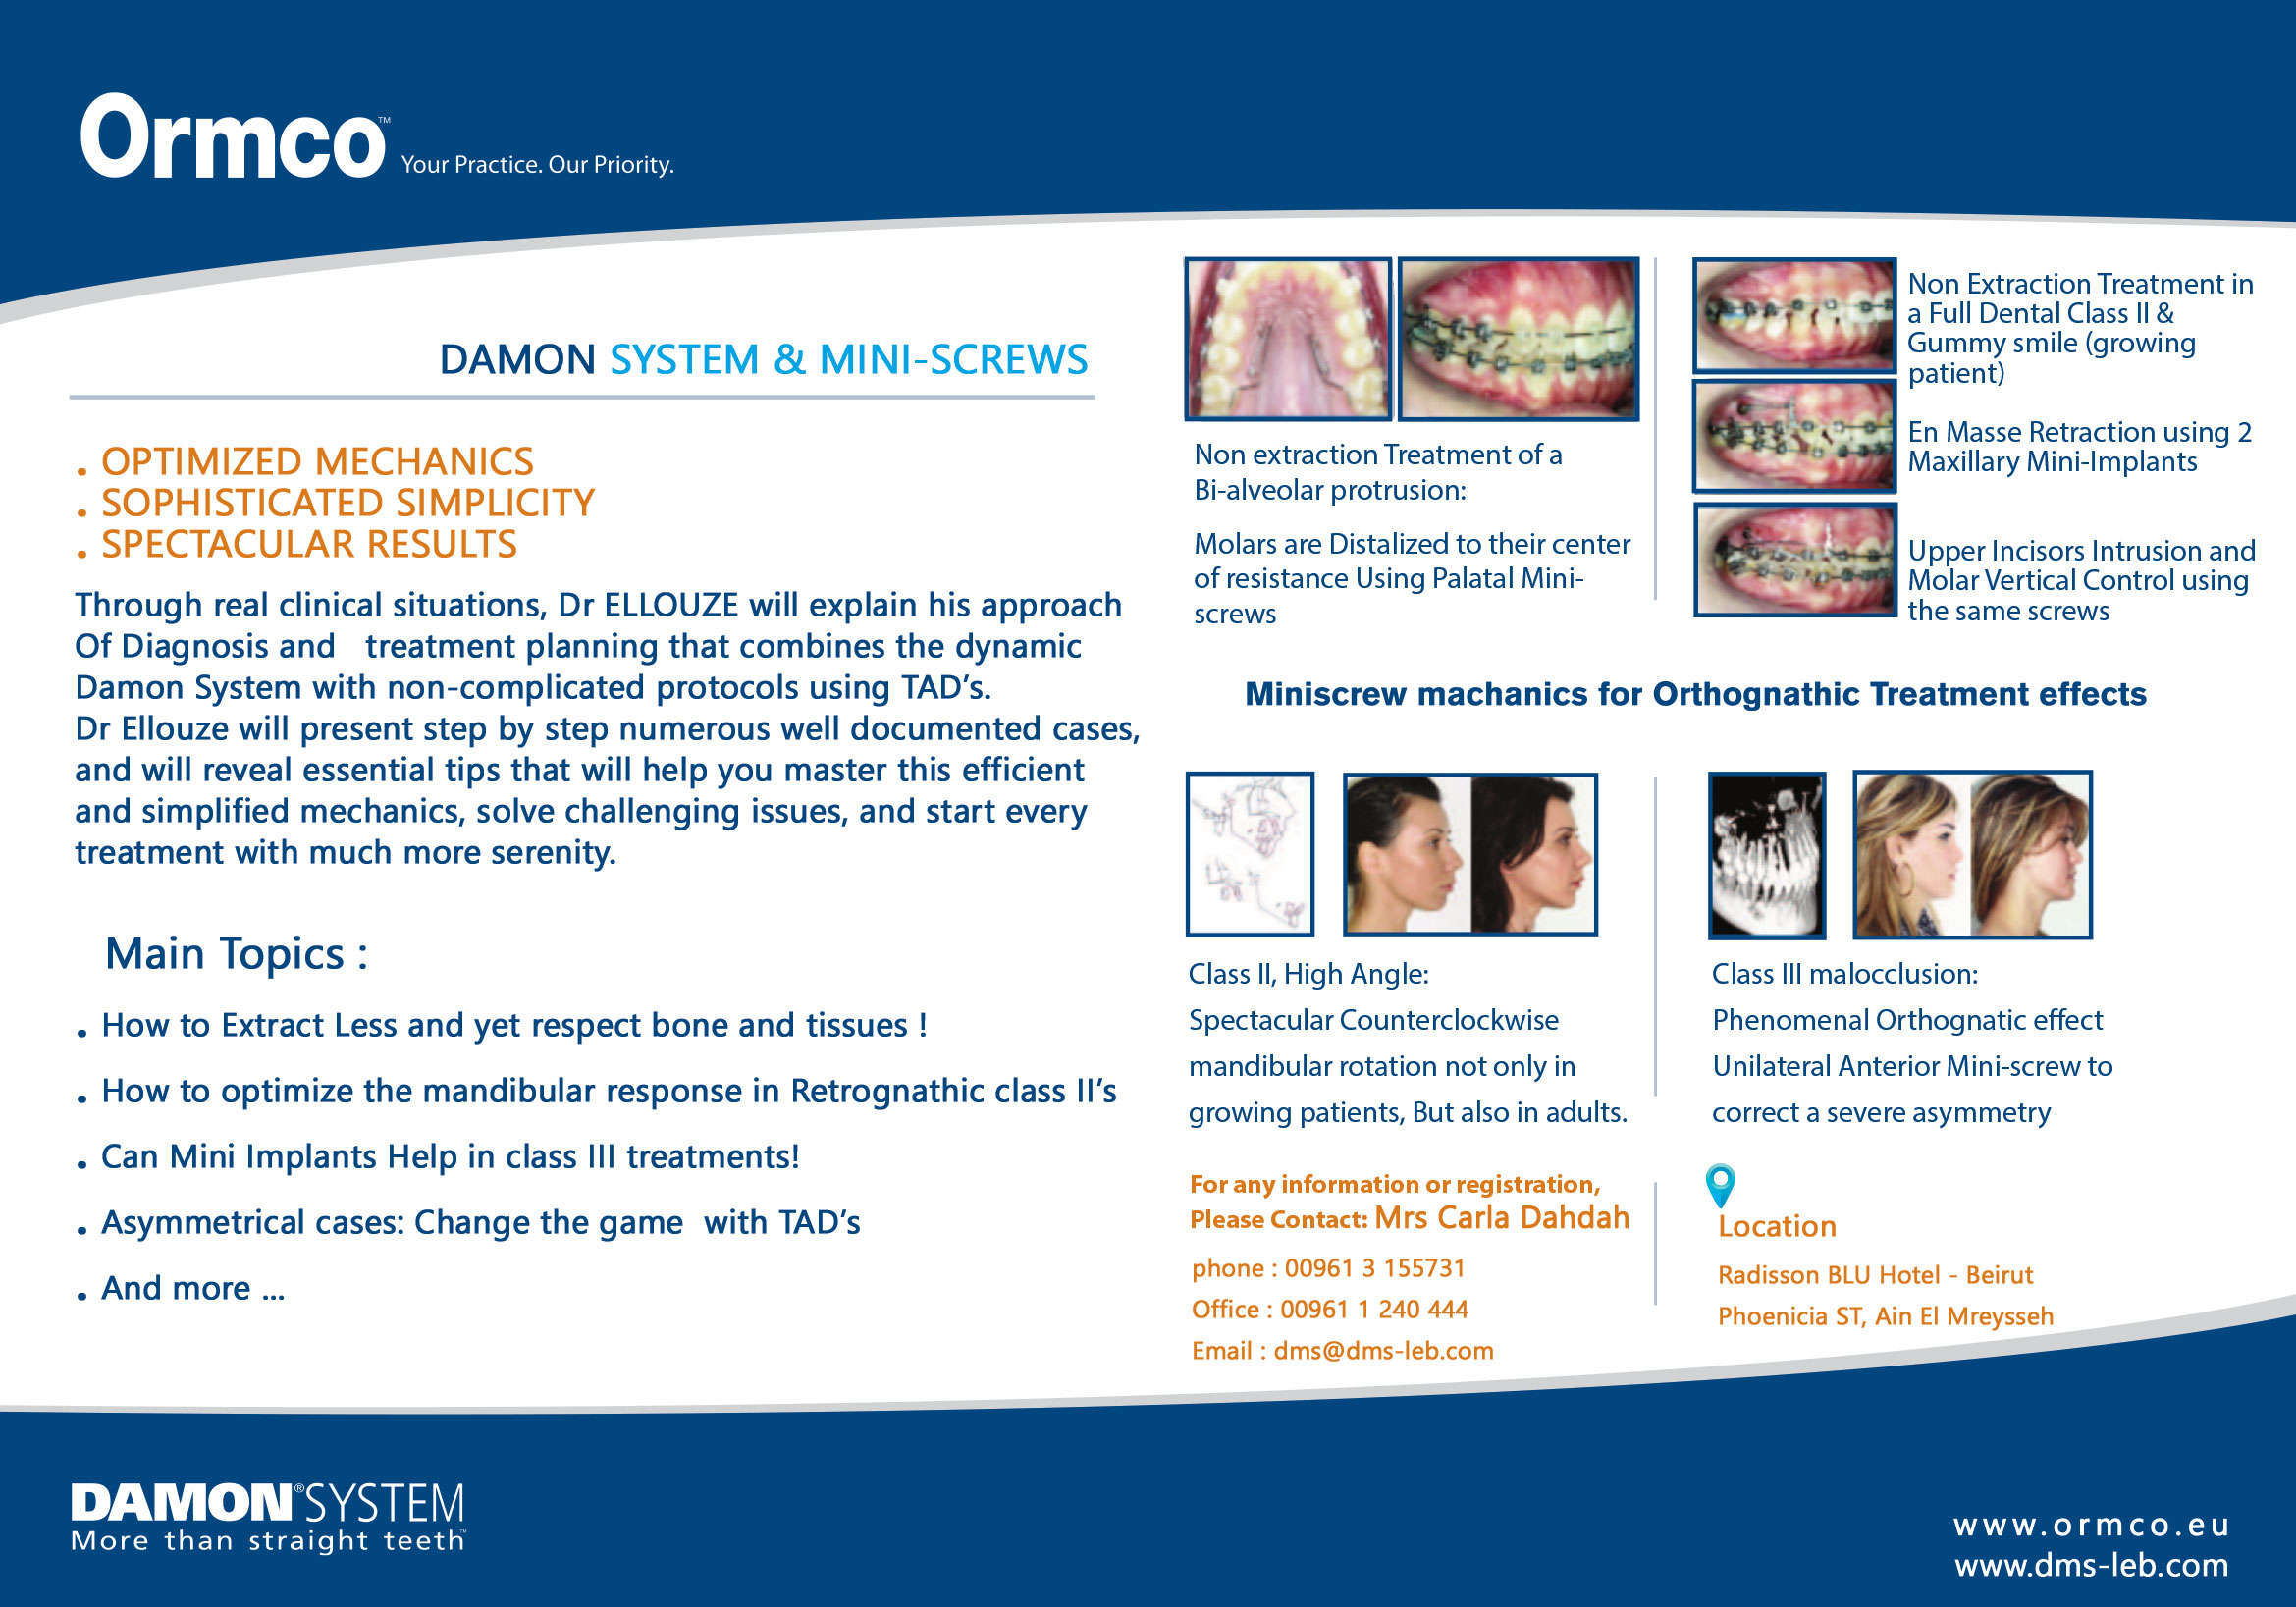 quality-source-course-dr-skander-brochure-22017-10-18-12-31-44